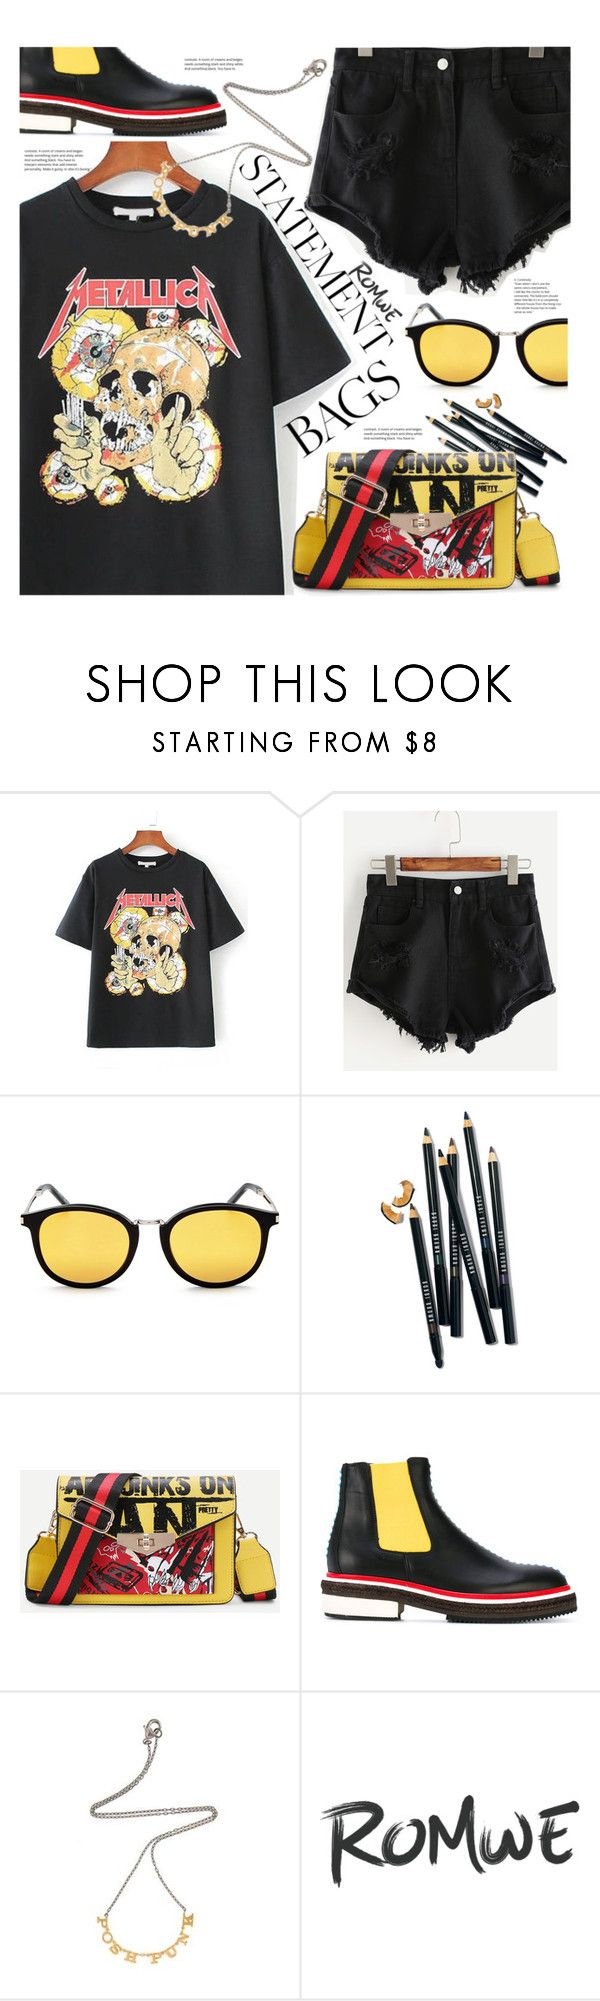 """""""Carry On: Statement Bags"""" by meyli-meyli ❤ liked on Polyvore featuring Yves Saint Laurent, Bobbi Brown Cosmetics, Christopher Kane, Tom Binns and statementbags"""